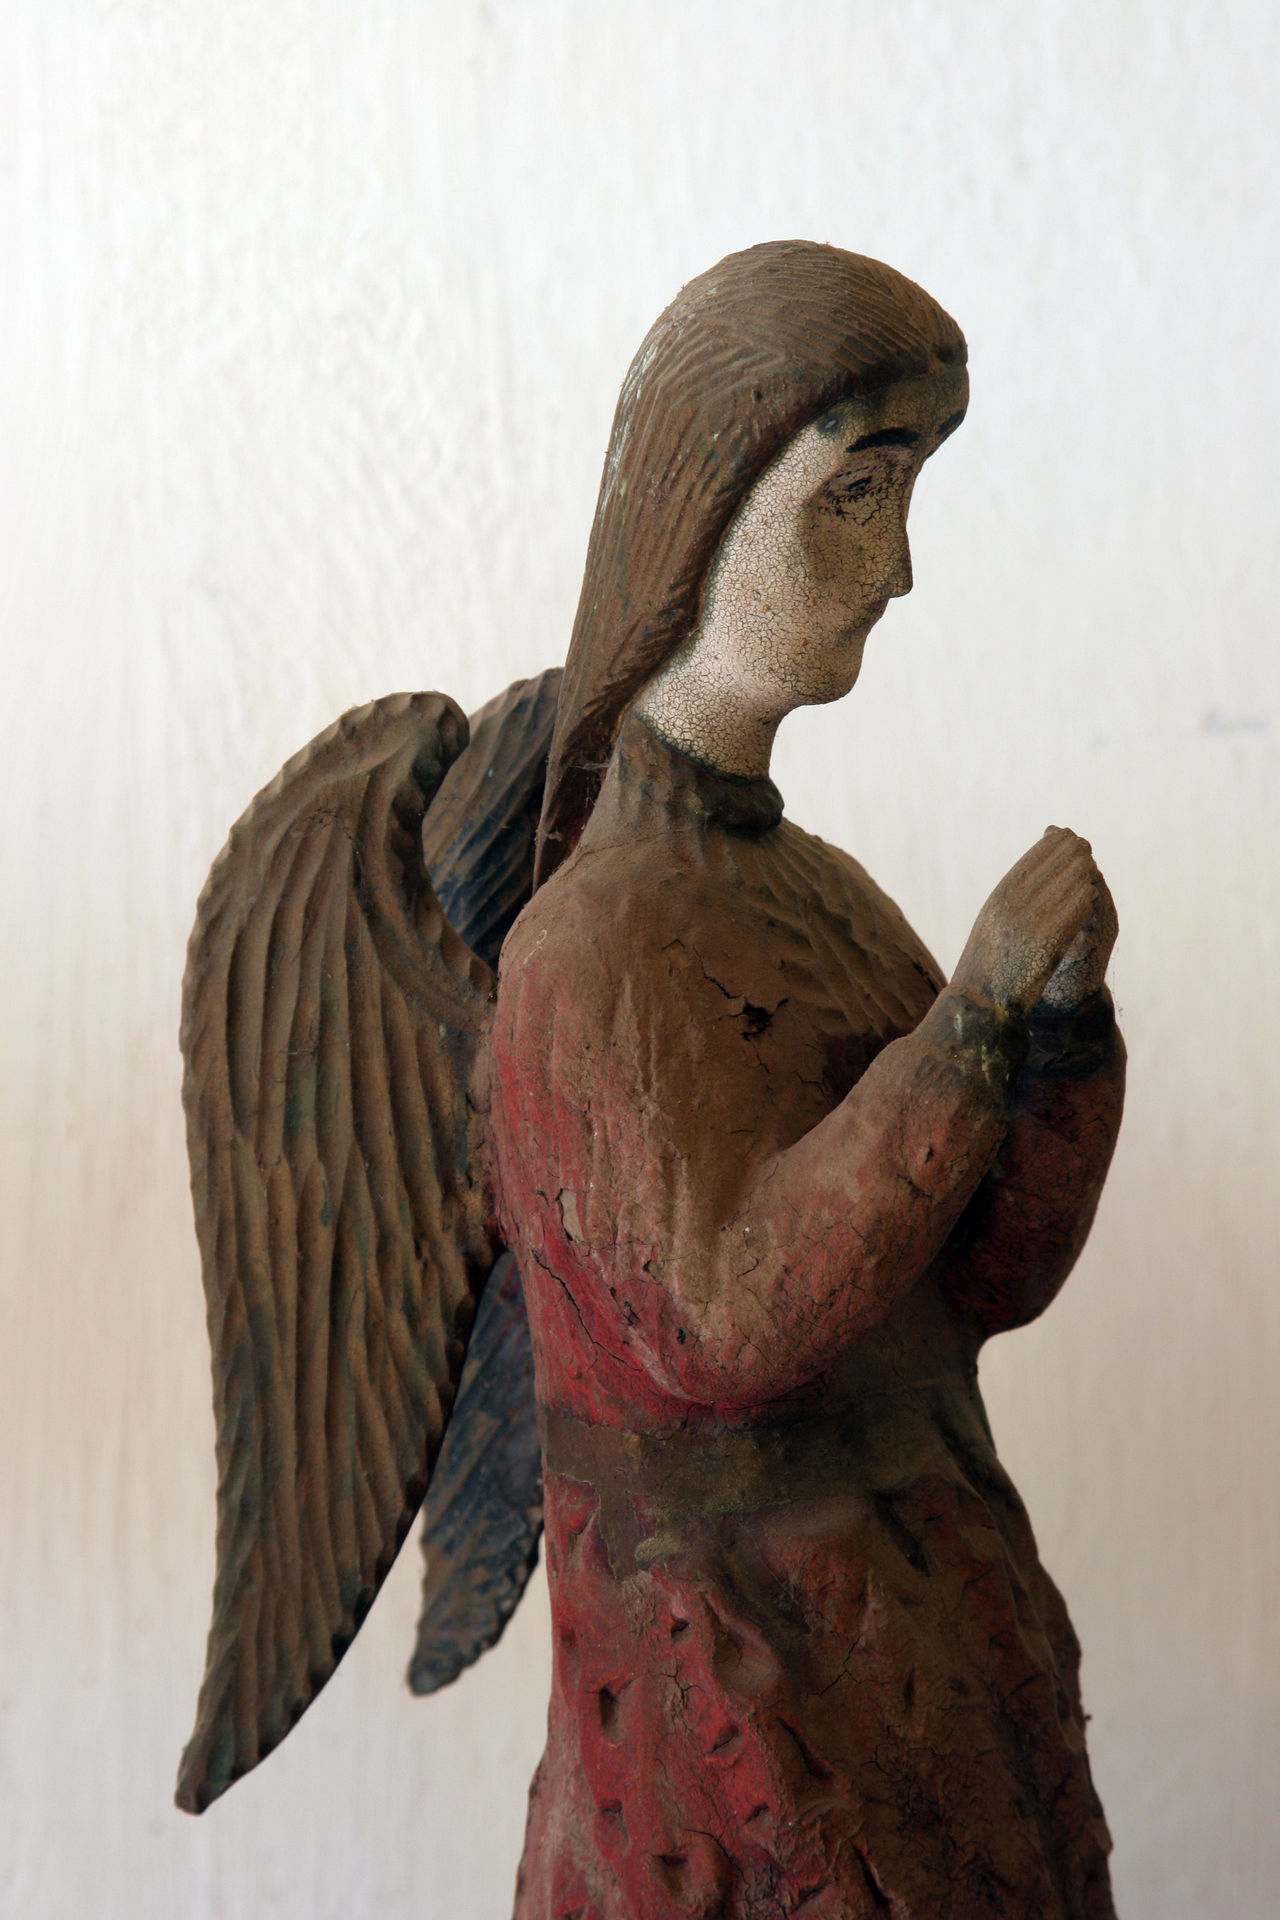 Angel Altar Angel Antique Art Belief Christianity .. Church Confession Croatia Europe Faith Gold Gospel Historical Holy Old Pray Religion Religious  Saint Sculpture Spirituality Statue Wing Worship